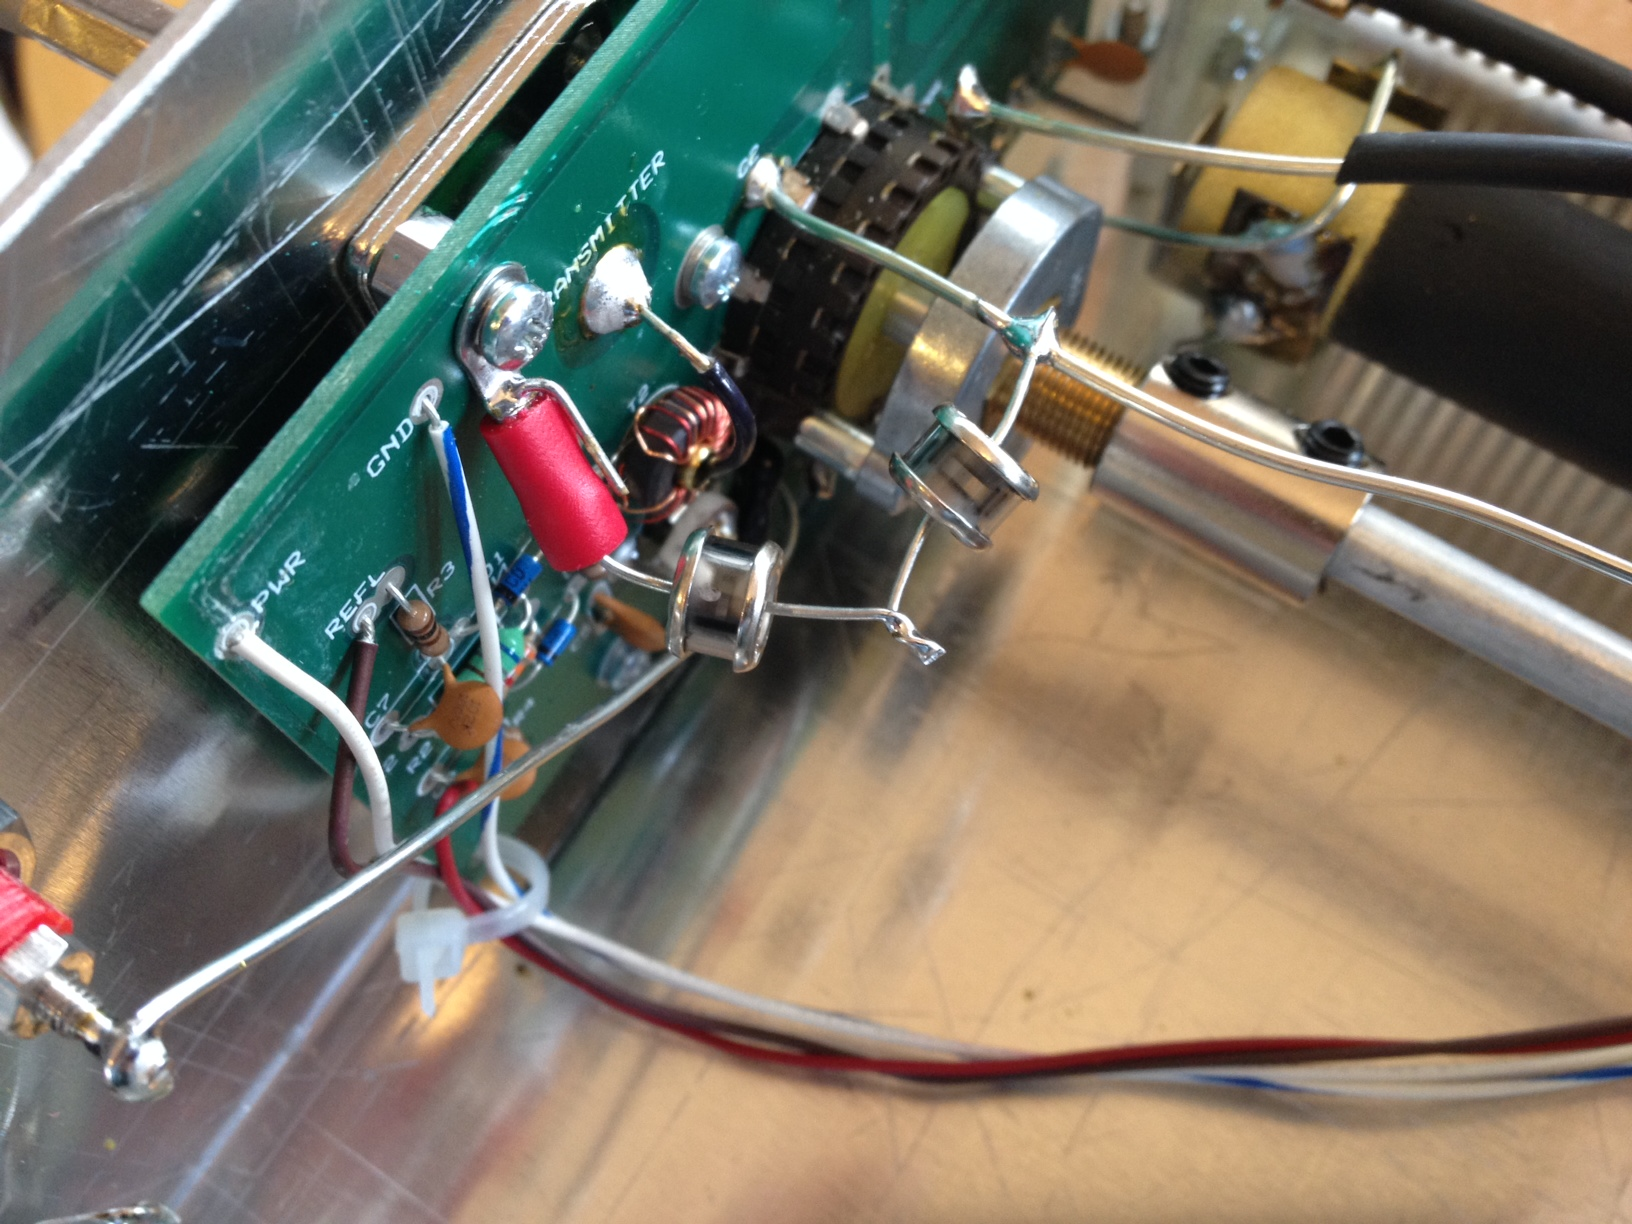 Protecting Both Tube And Transistor Hf Communications Equipment From Figure Antenna Matching Circuit 3 Two Gas Discharge Voltage Clamping Devices In Series Connected To The Center